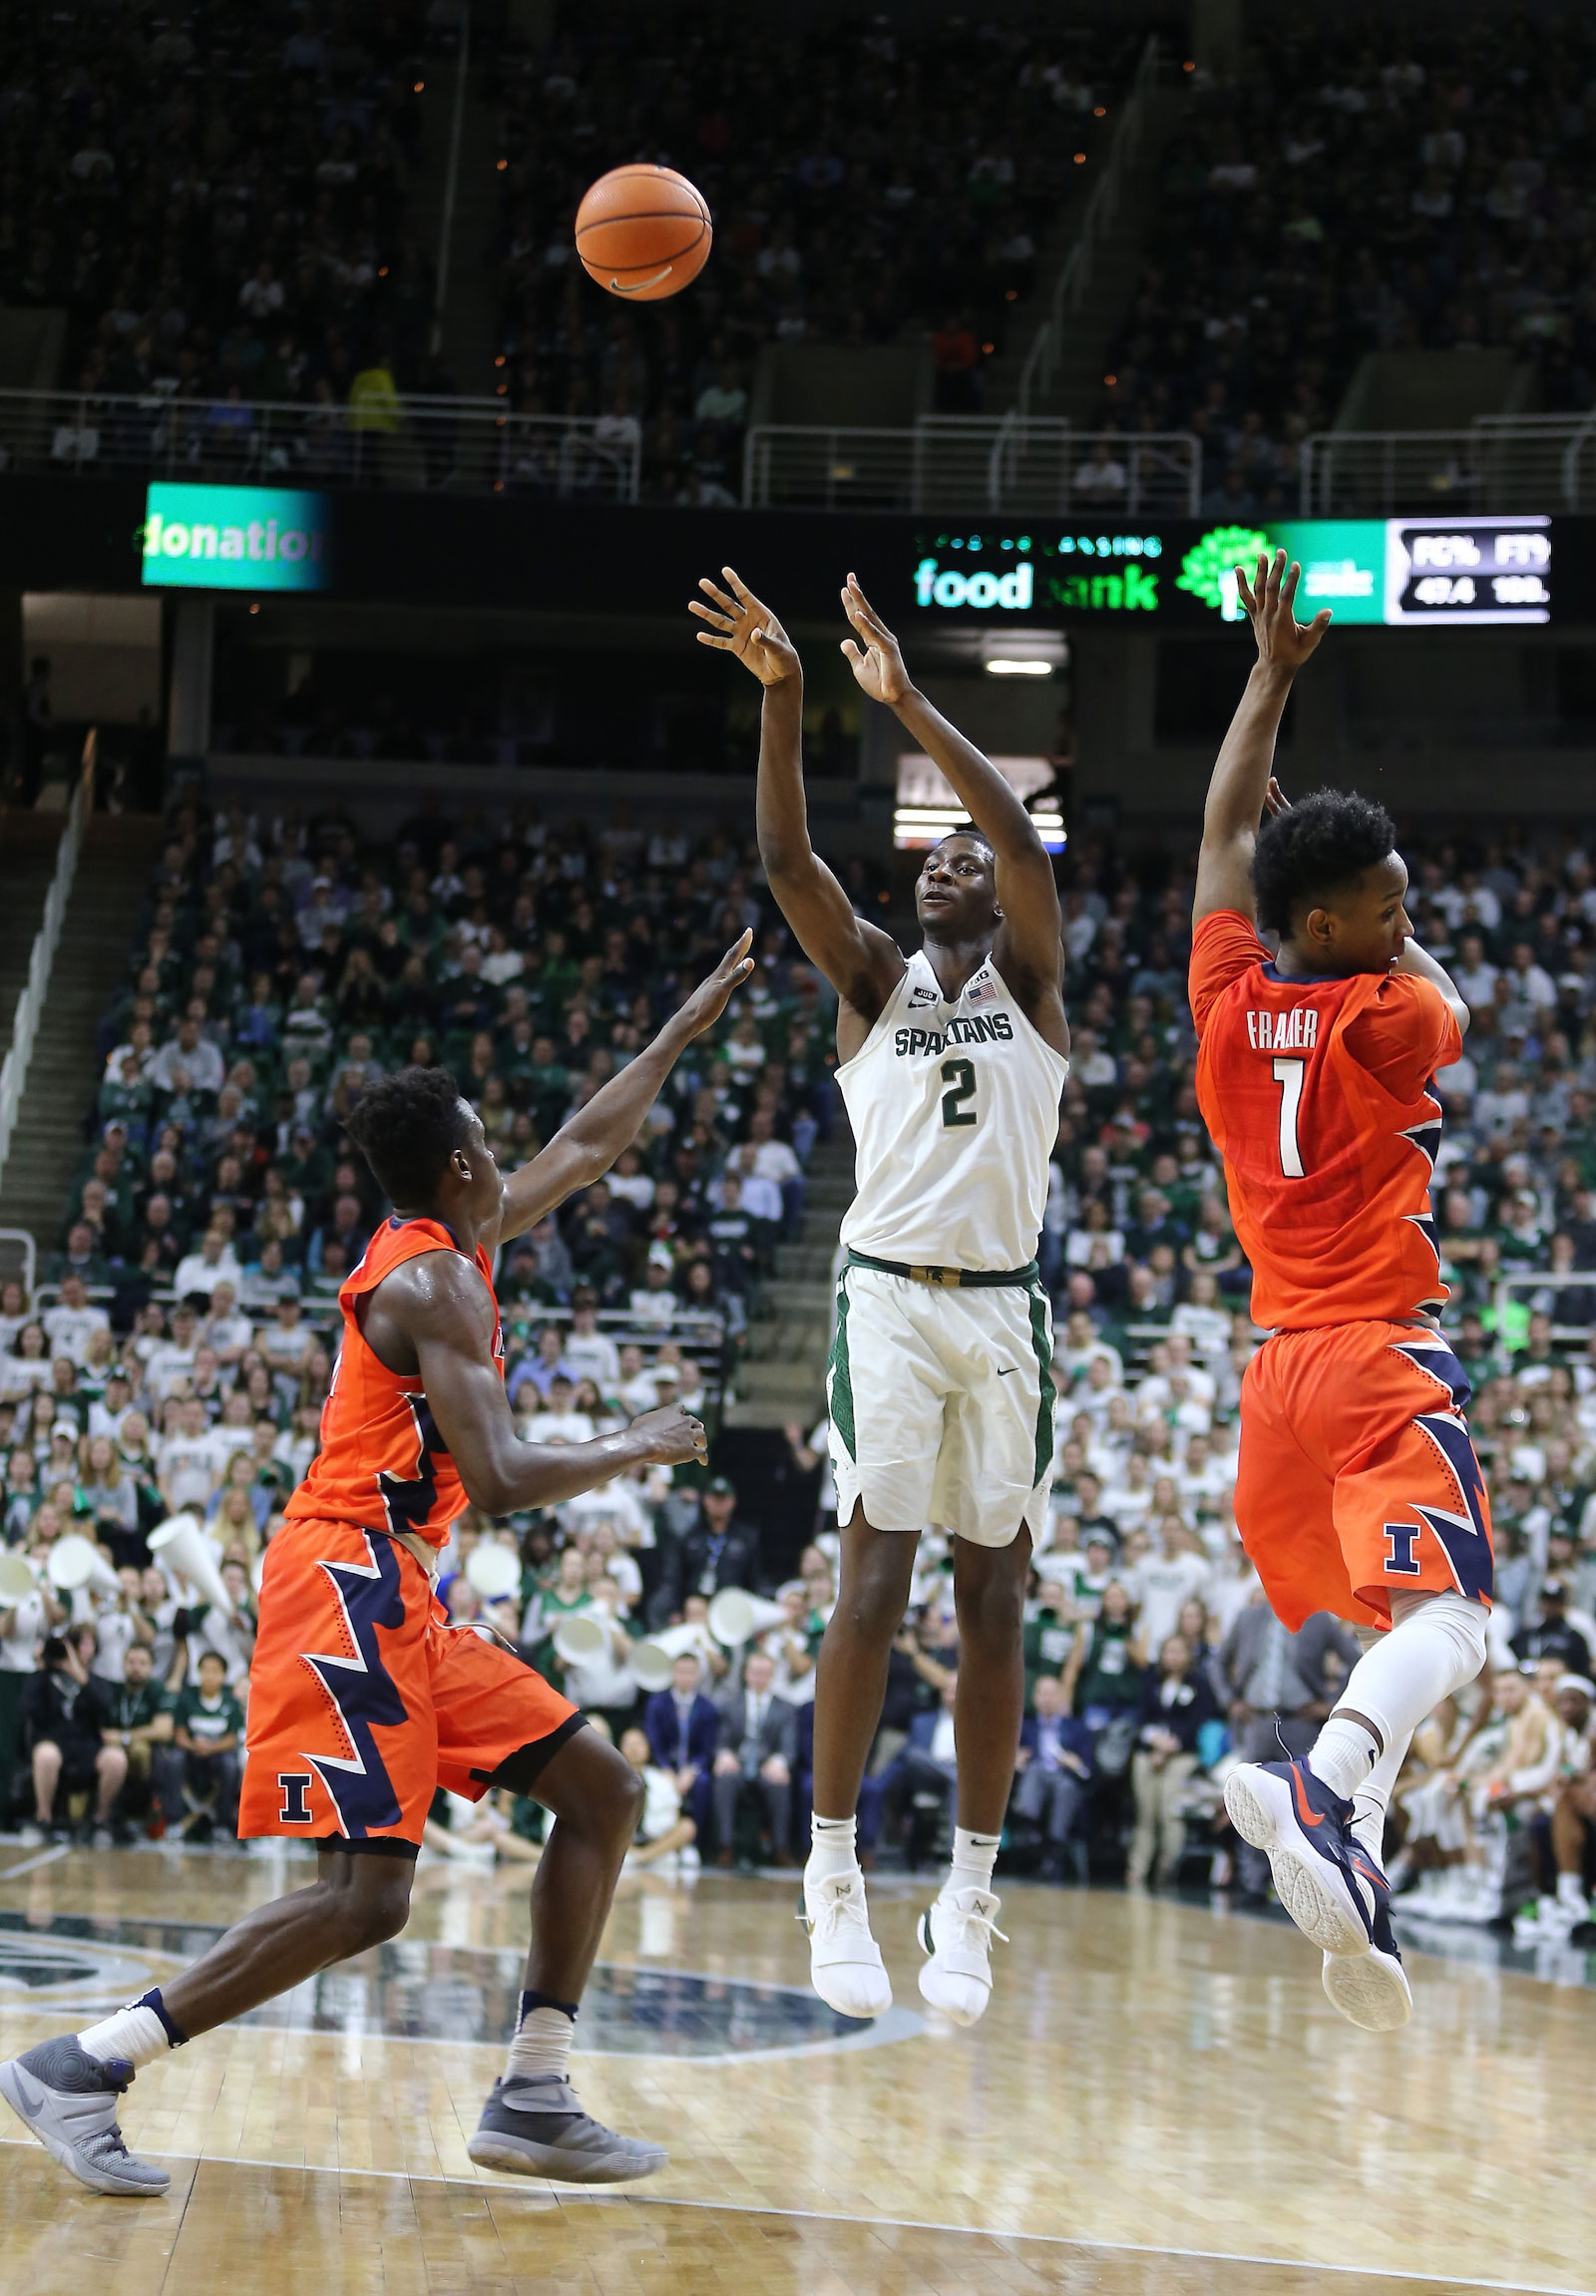 Jaren Jackson Jr. #2 of the Michigan State Spartans shoots a three pointer during a game against the Illinois Fighting Illini at Breslin Ceter on February 20, 2018 in East Lansing, Michigan.